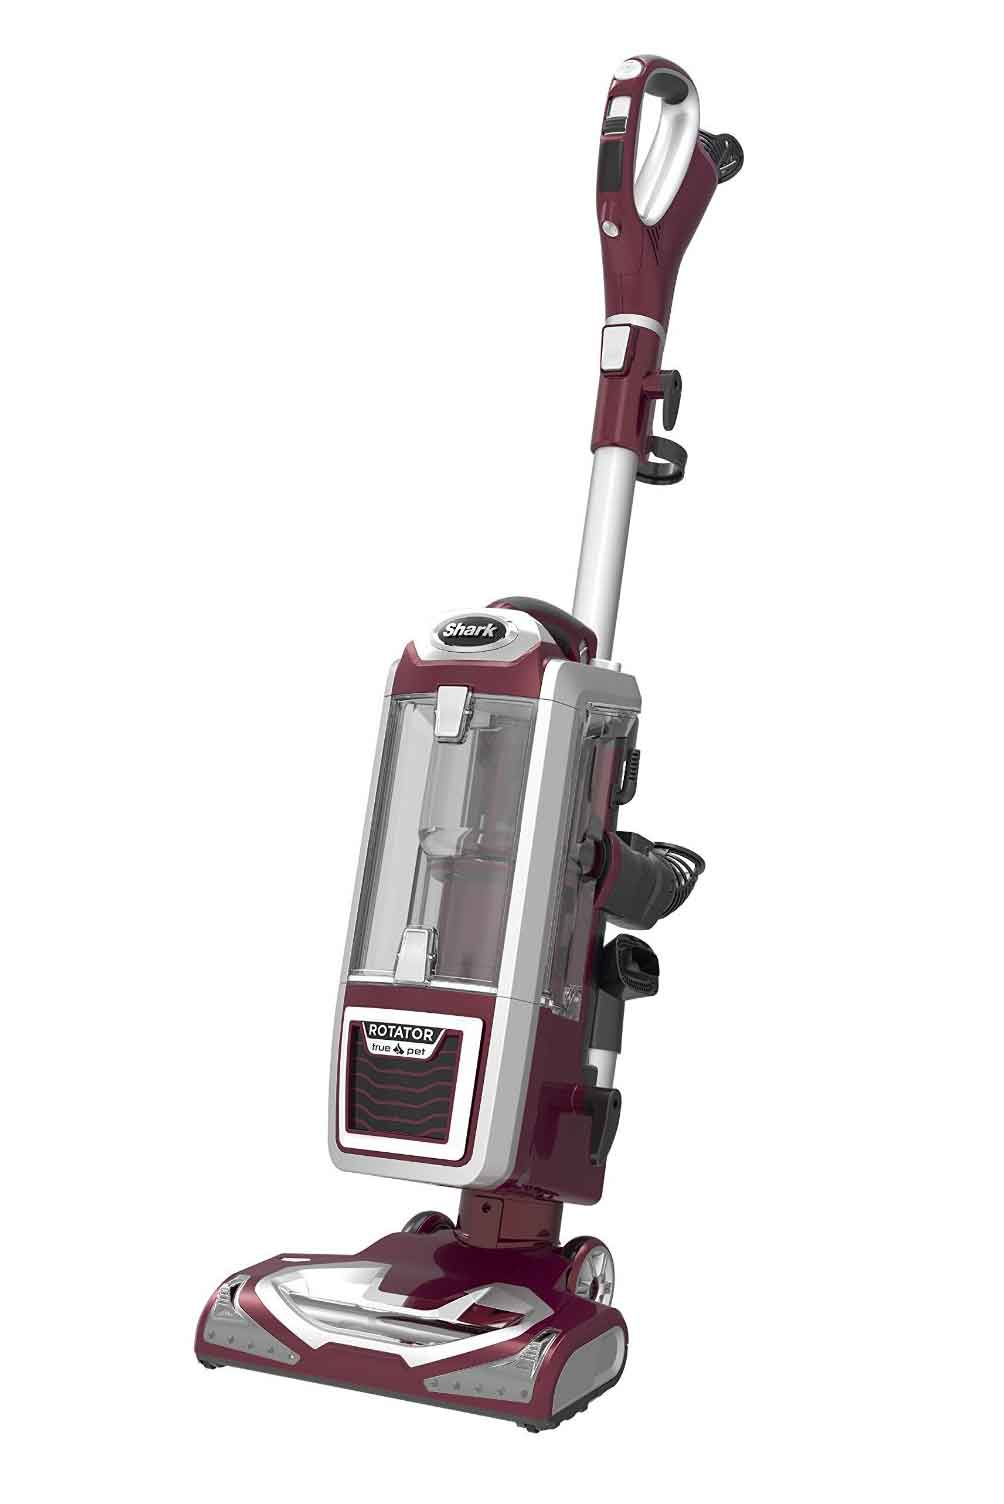 The Best Shark Vacuums Nerdwallet